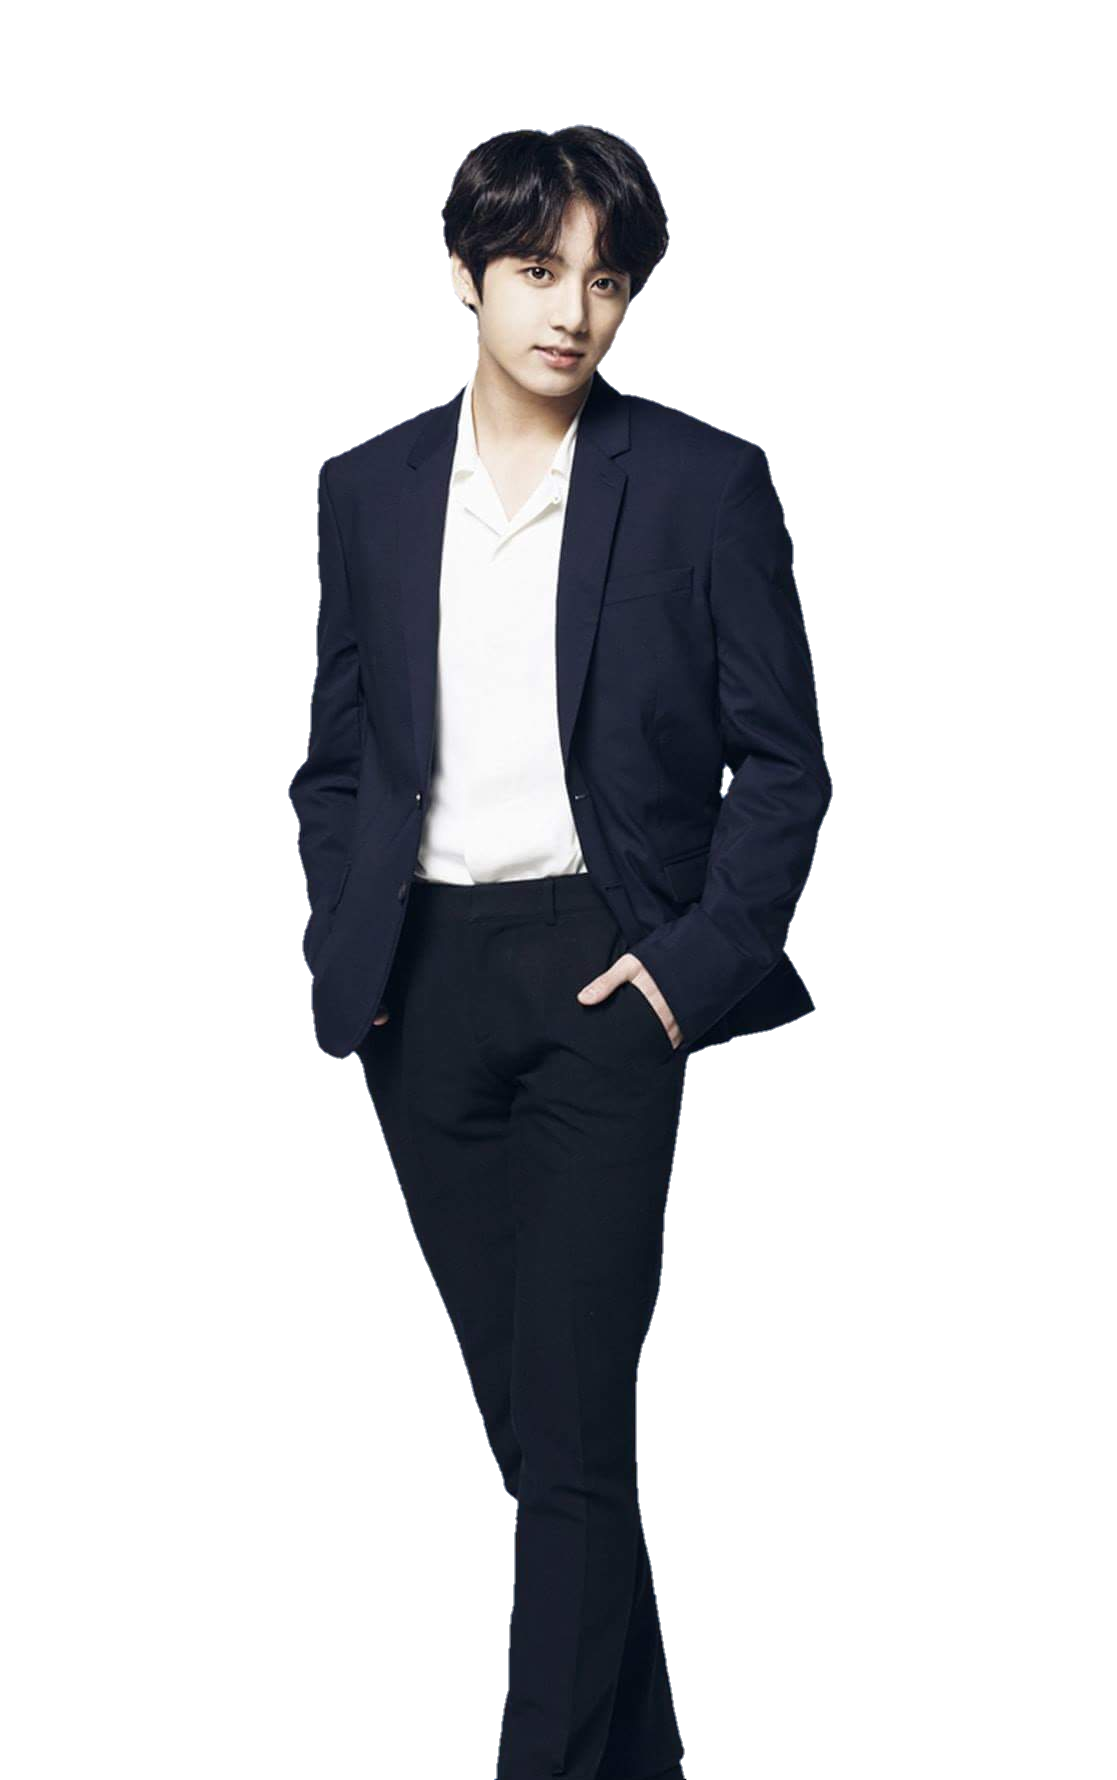 Transparent jungkook pmg. Bts png photo album